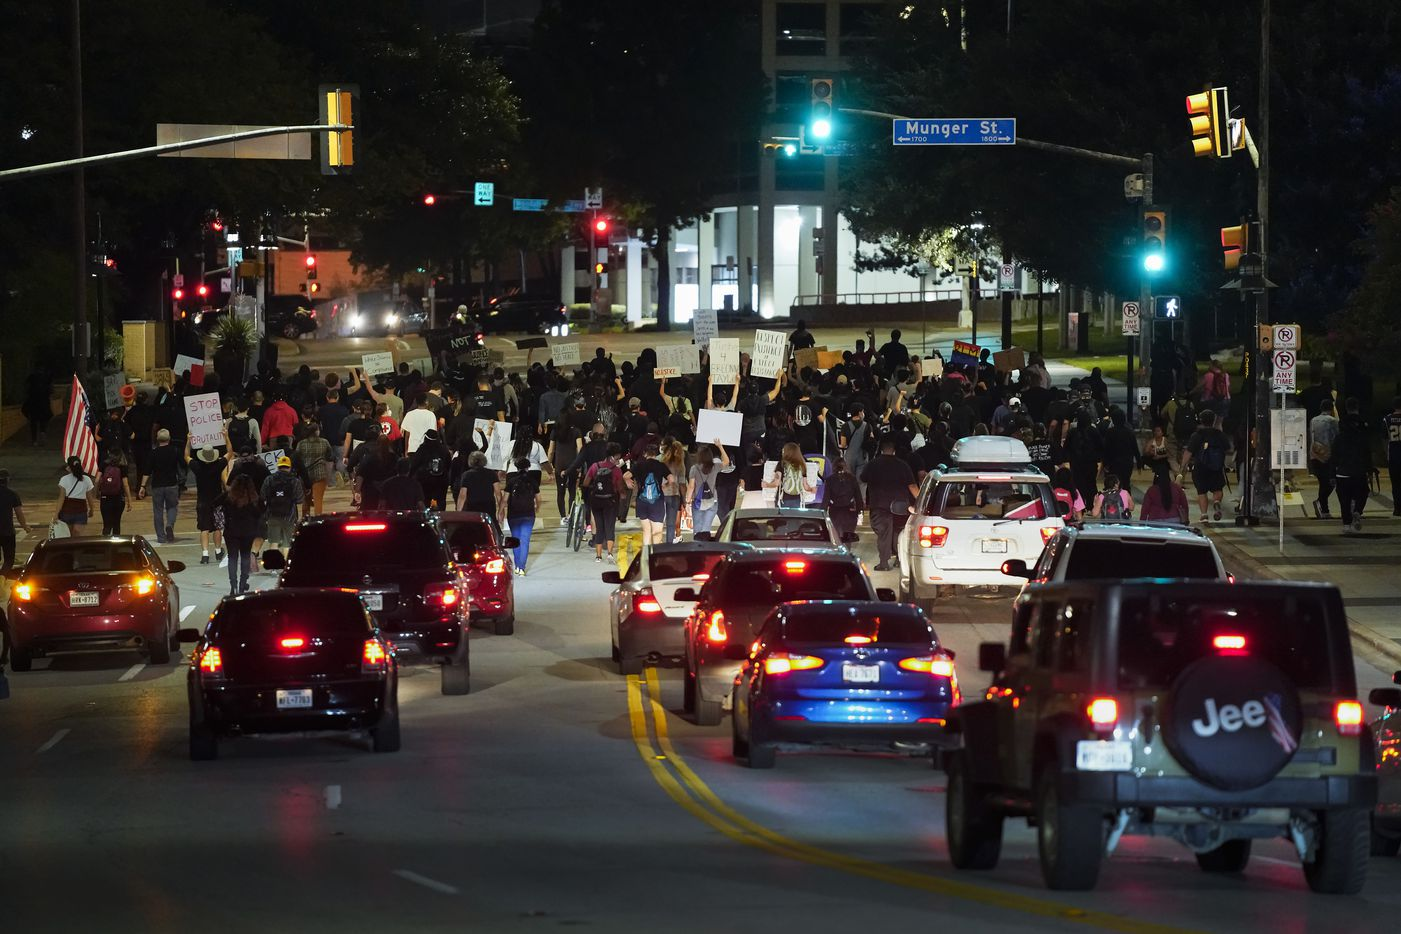 Traffic backs up as demonstrators march on Ackard Street in downtown Dallas after a Kentucky grand jury brought no charges against Louisville police for the killing of Breonna Taylor on Wednesday, Sept. 23, 2020.